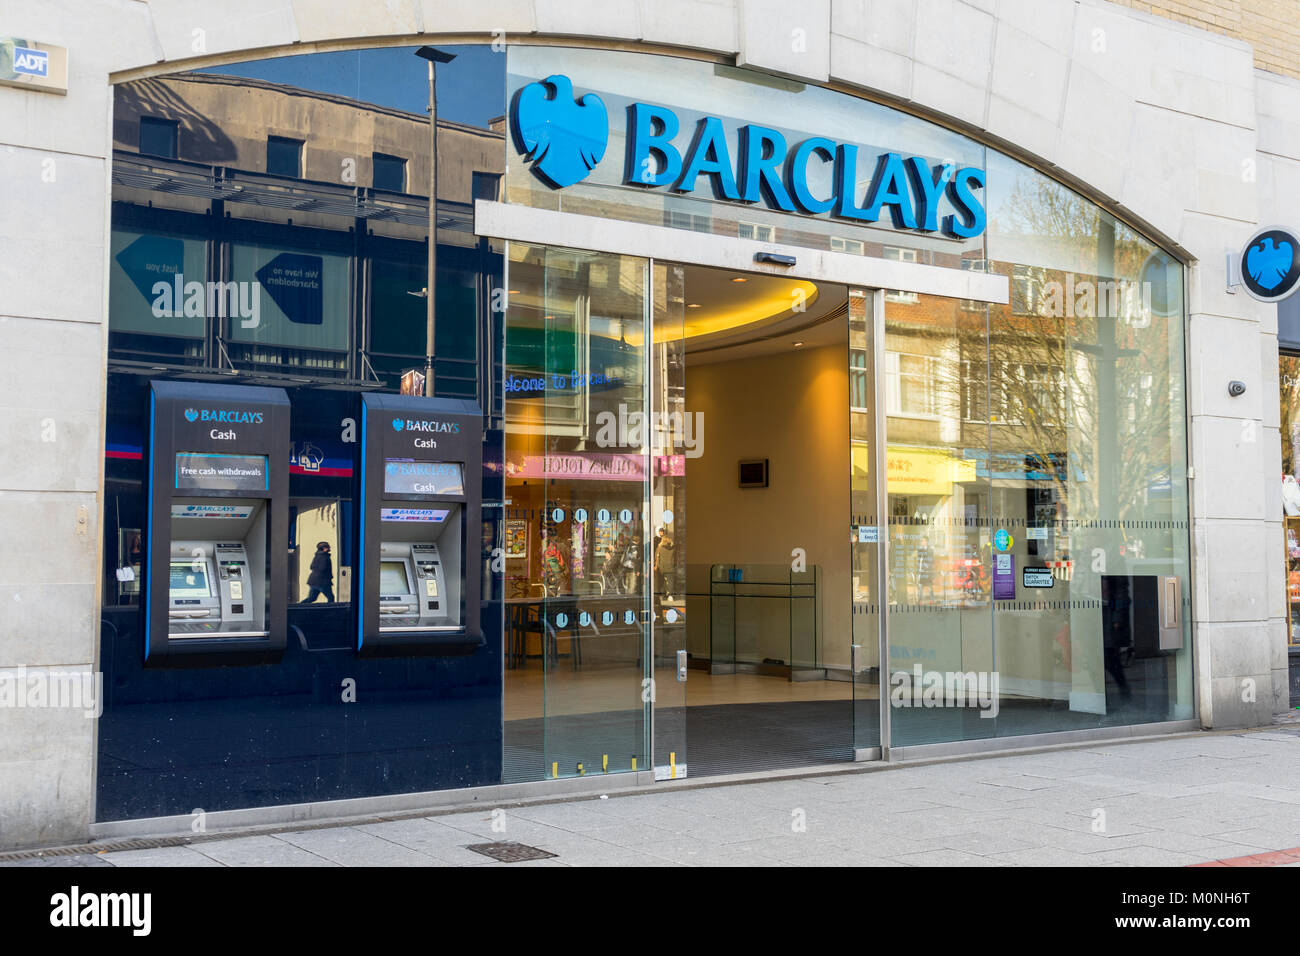 Entrance of a Barclays bank branch located along a High Street in England 2018, UK - Stock Image